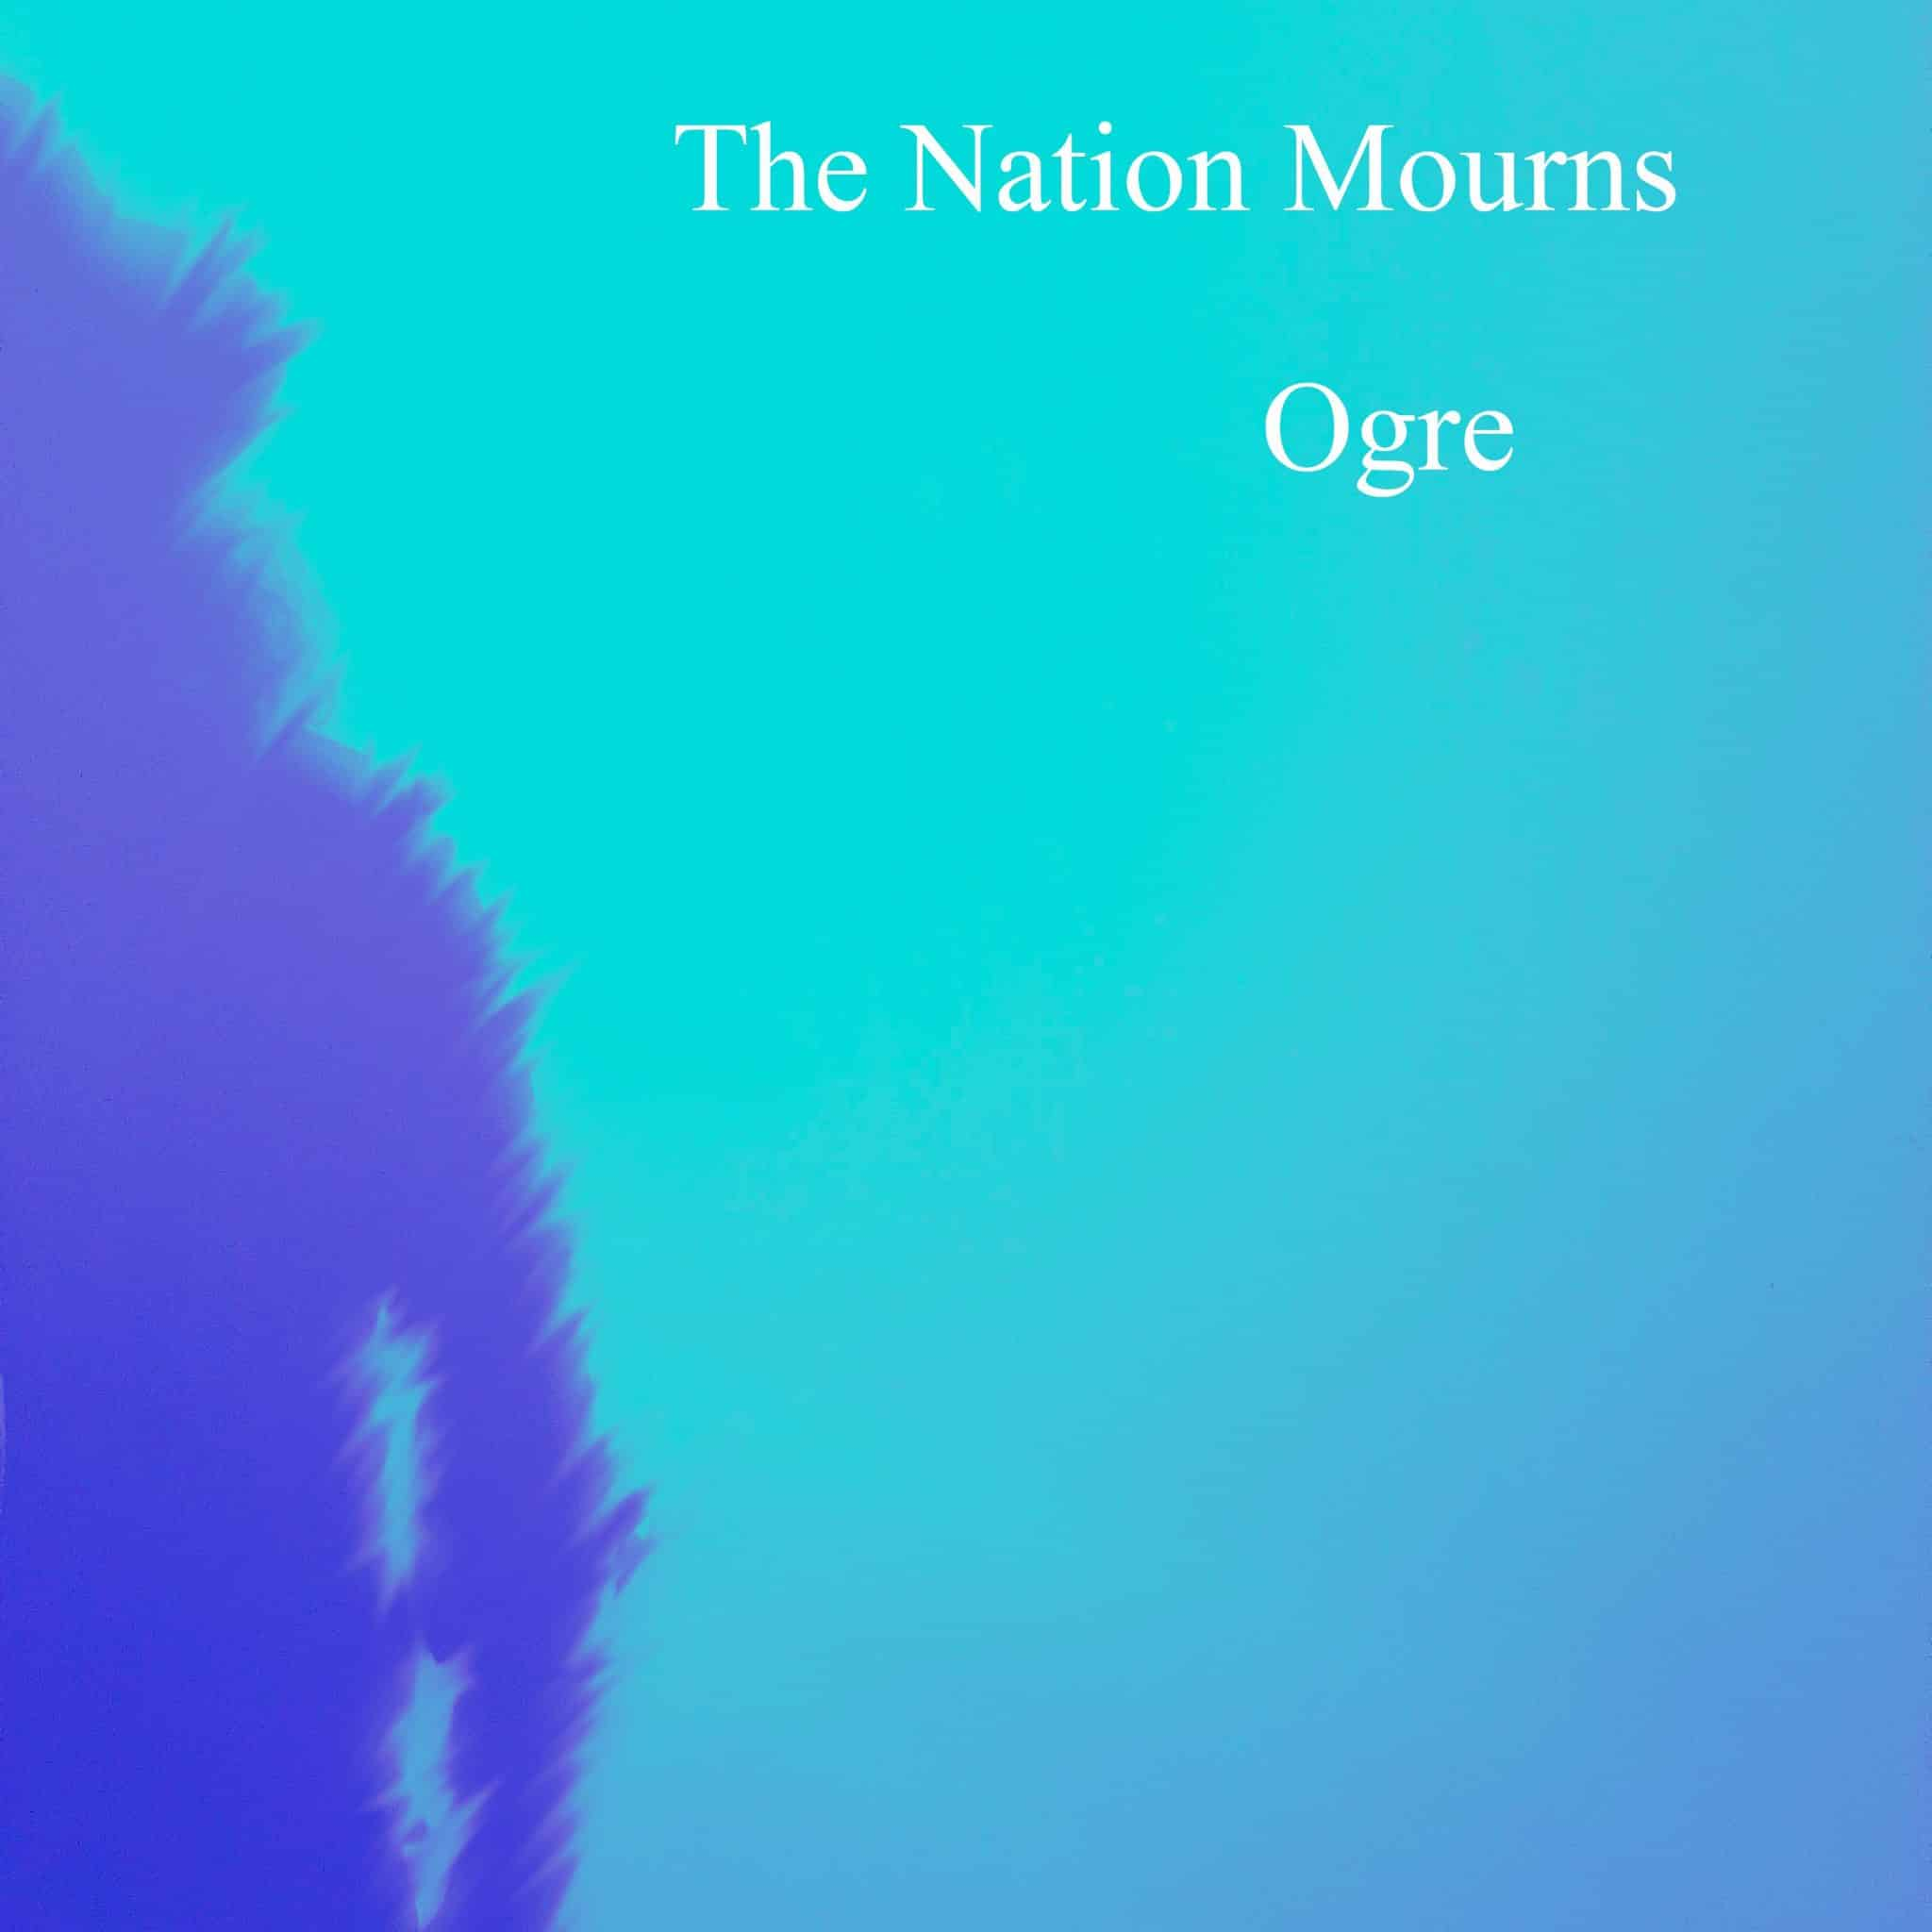 The Nation Mourns - Ogre